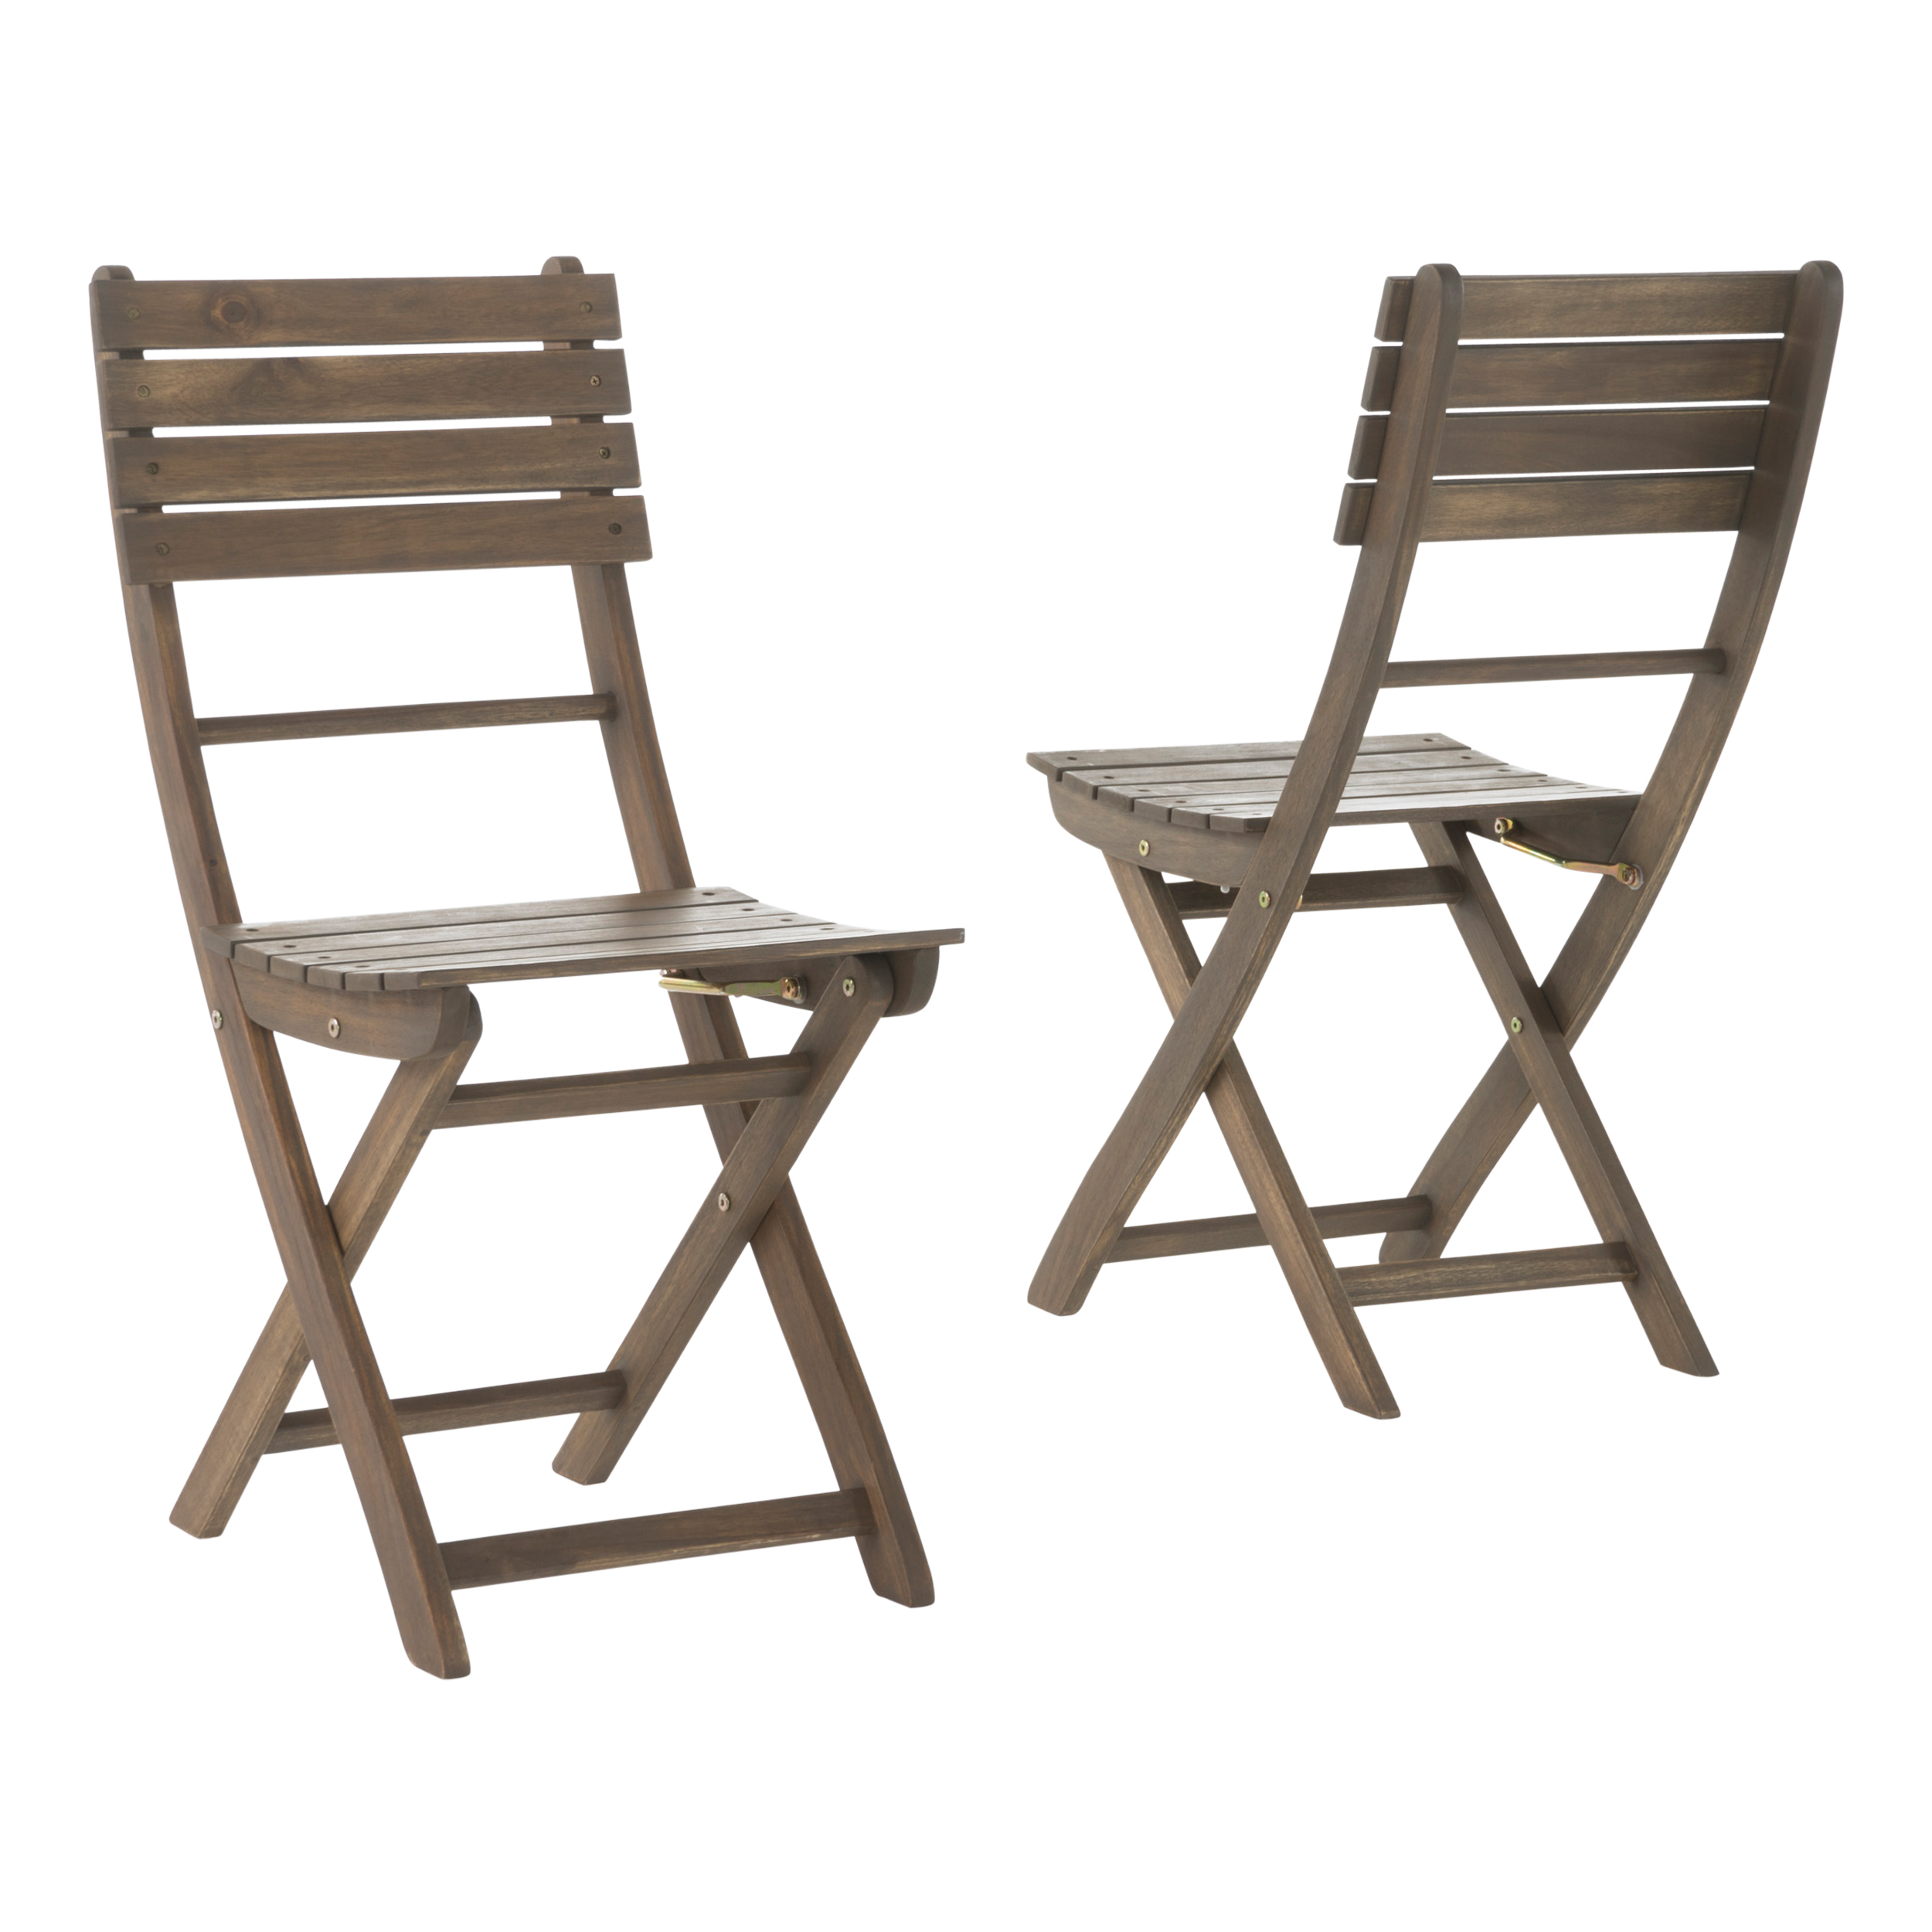 Etonnant Vicaro Outdoor Acacia Wood Foldable Dining Chairs, Set Of 2, Grey Finish